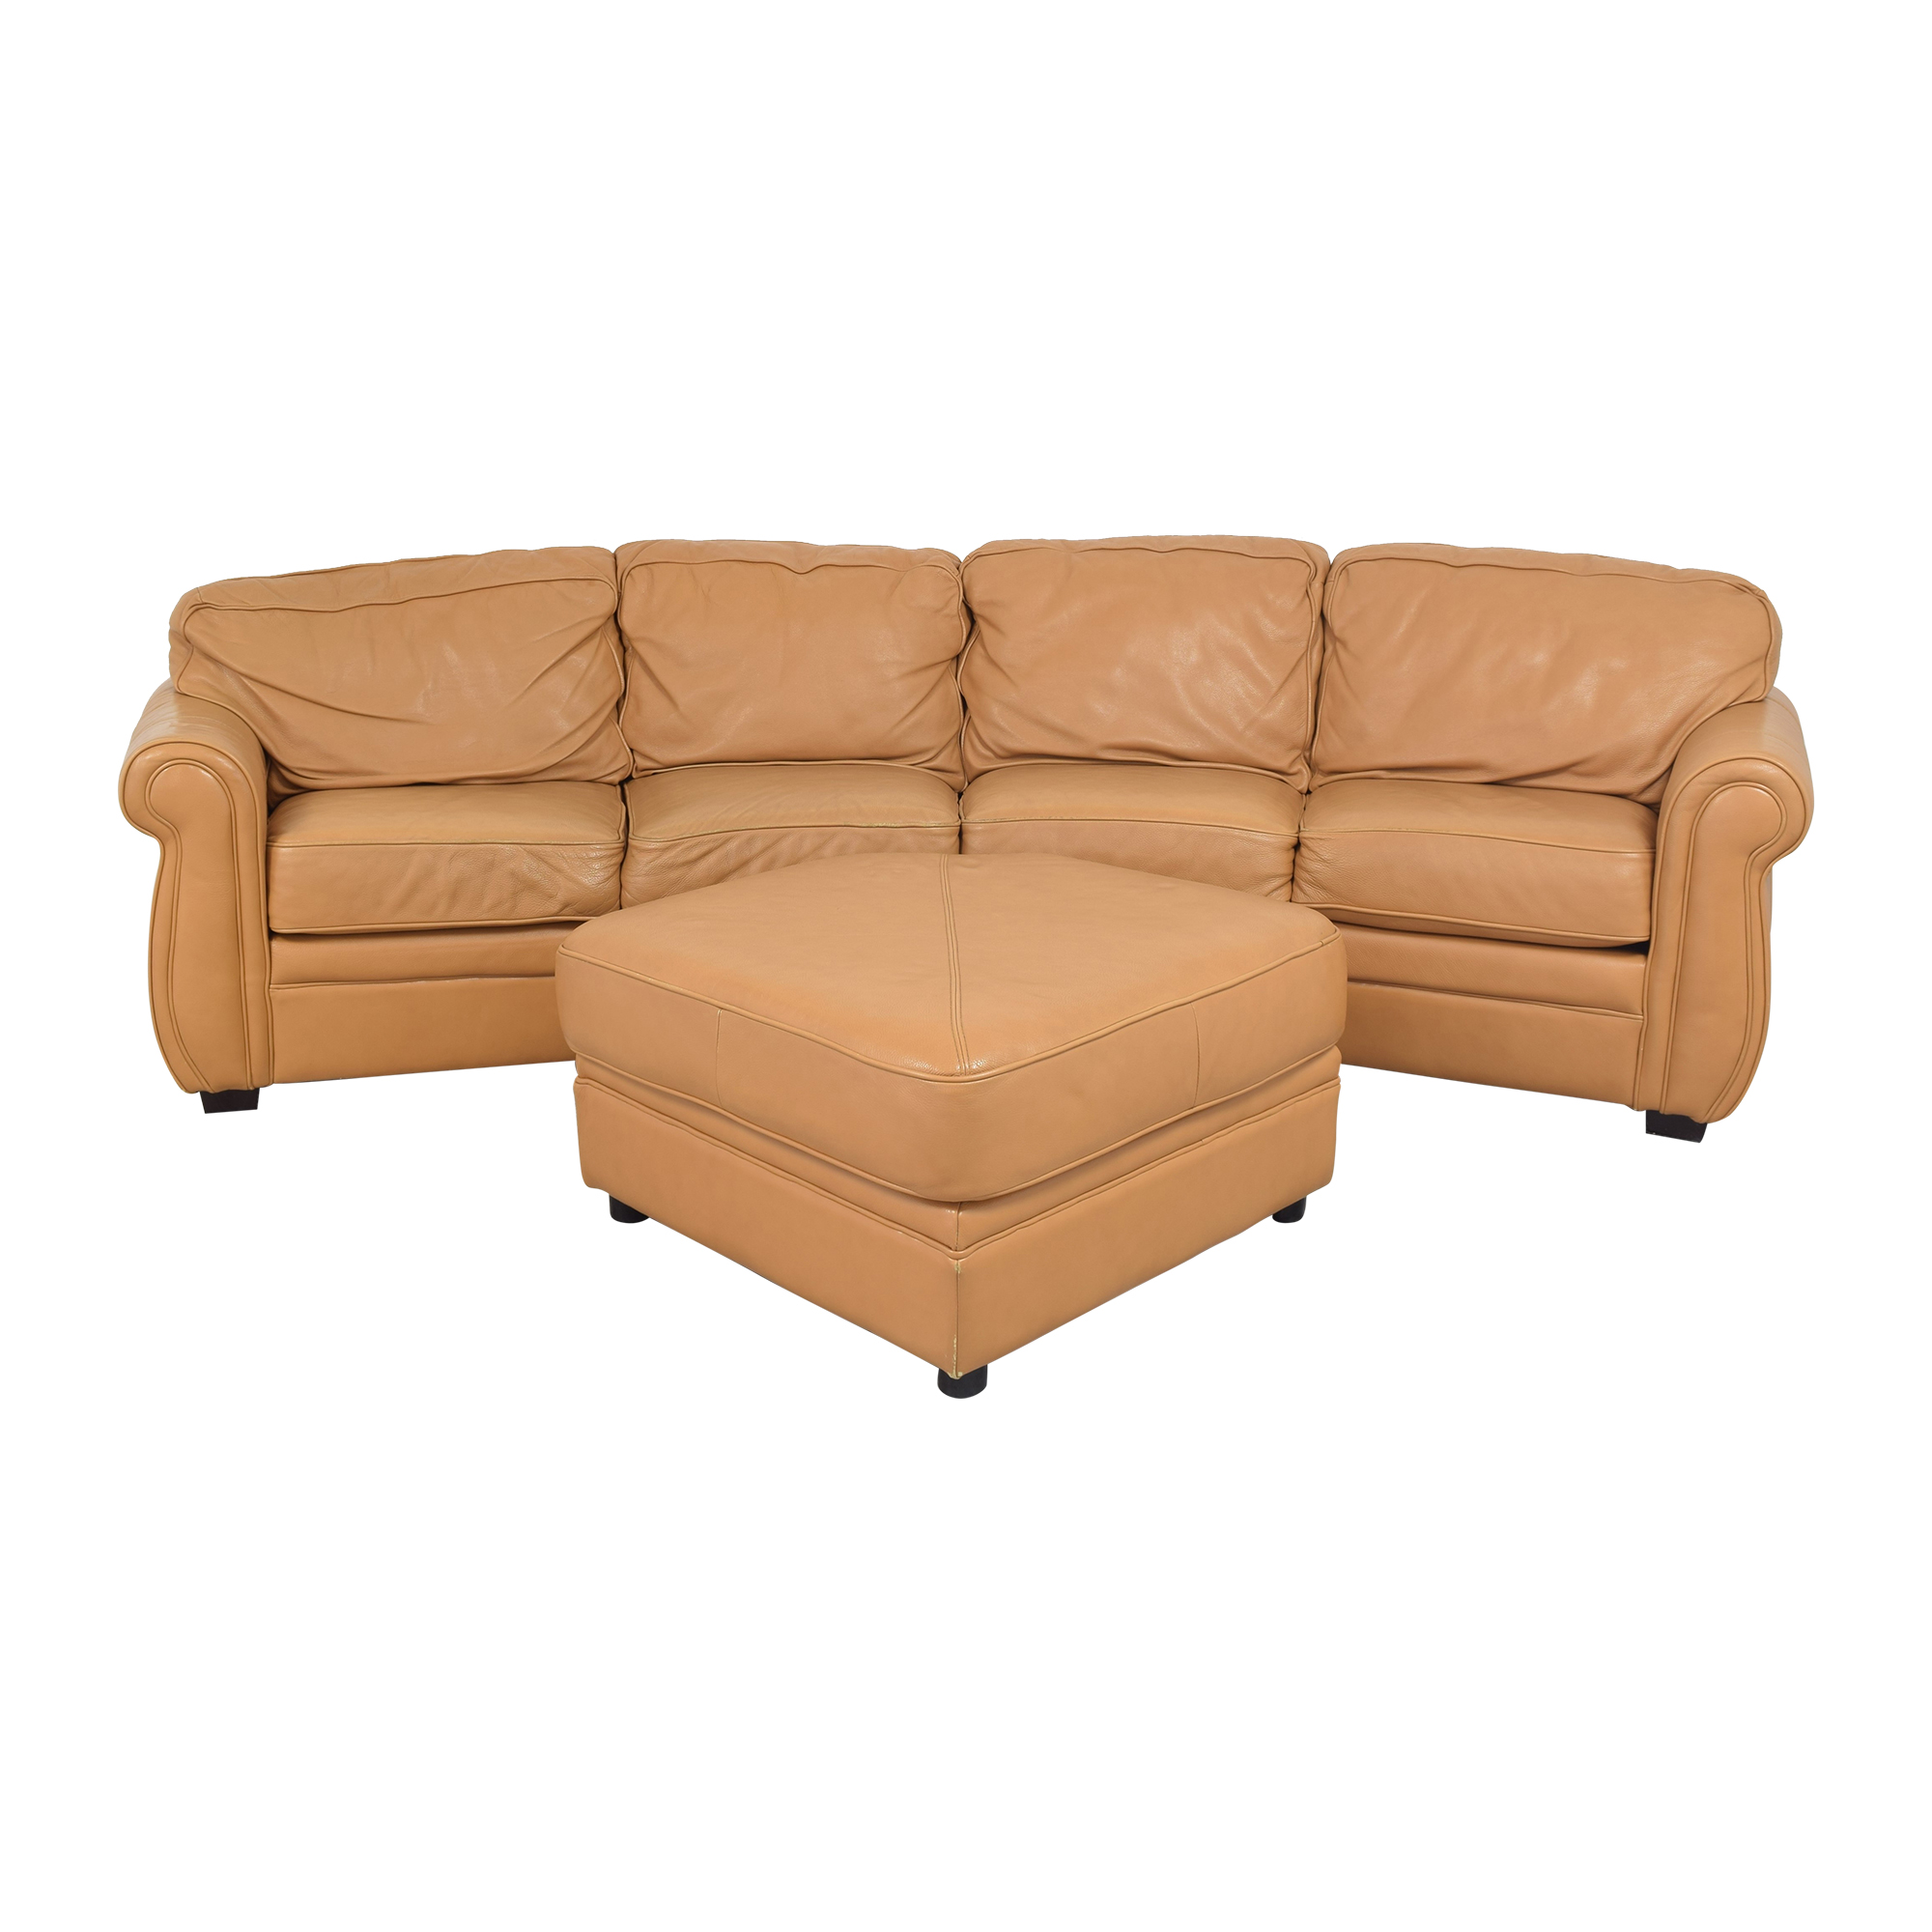 Two Piece Sectional Sofa with Ottoman Sectionals